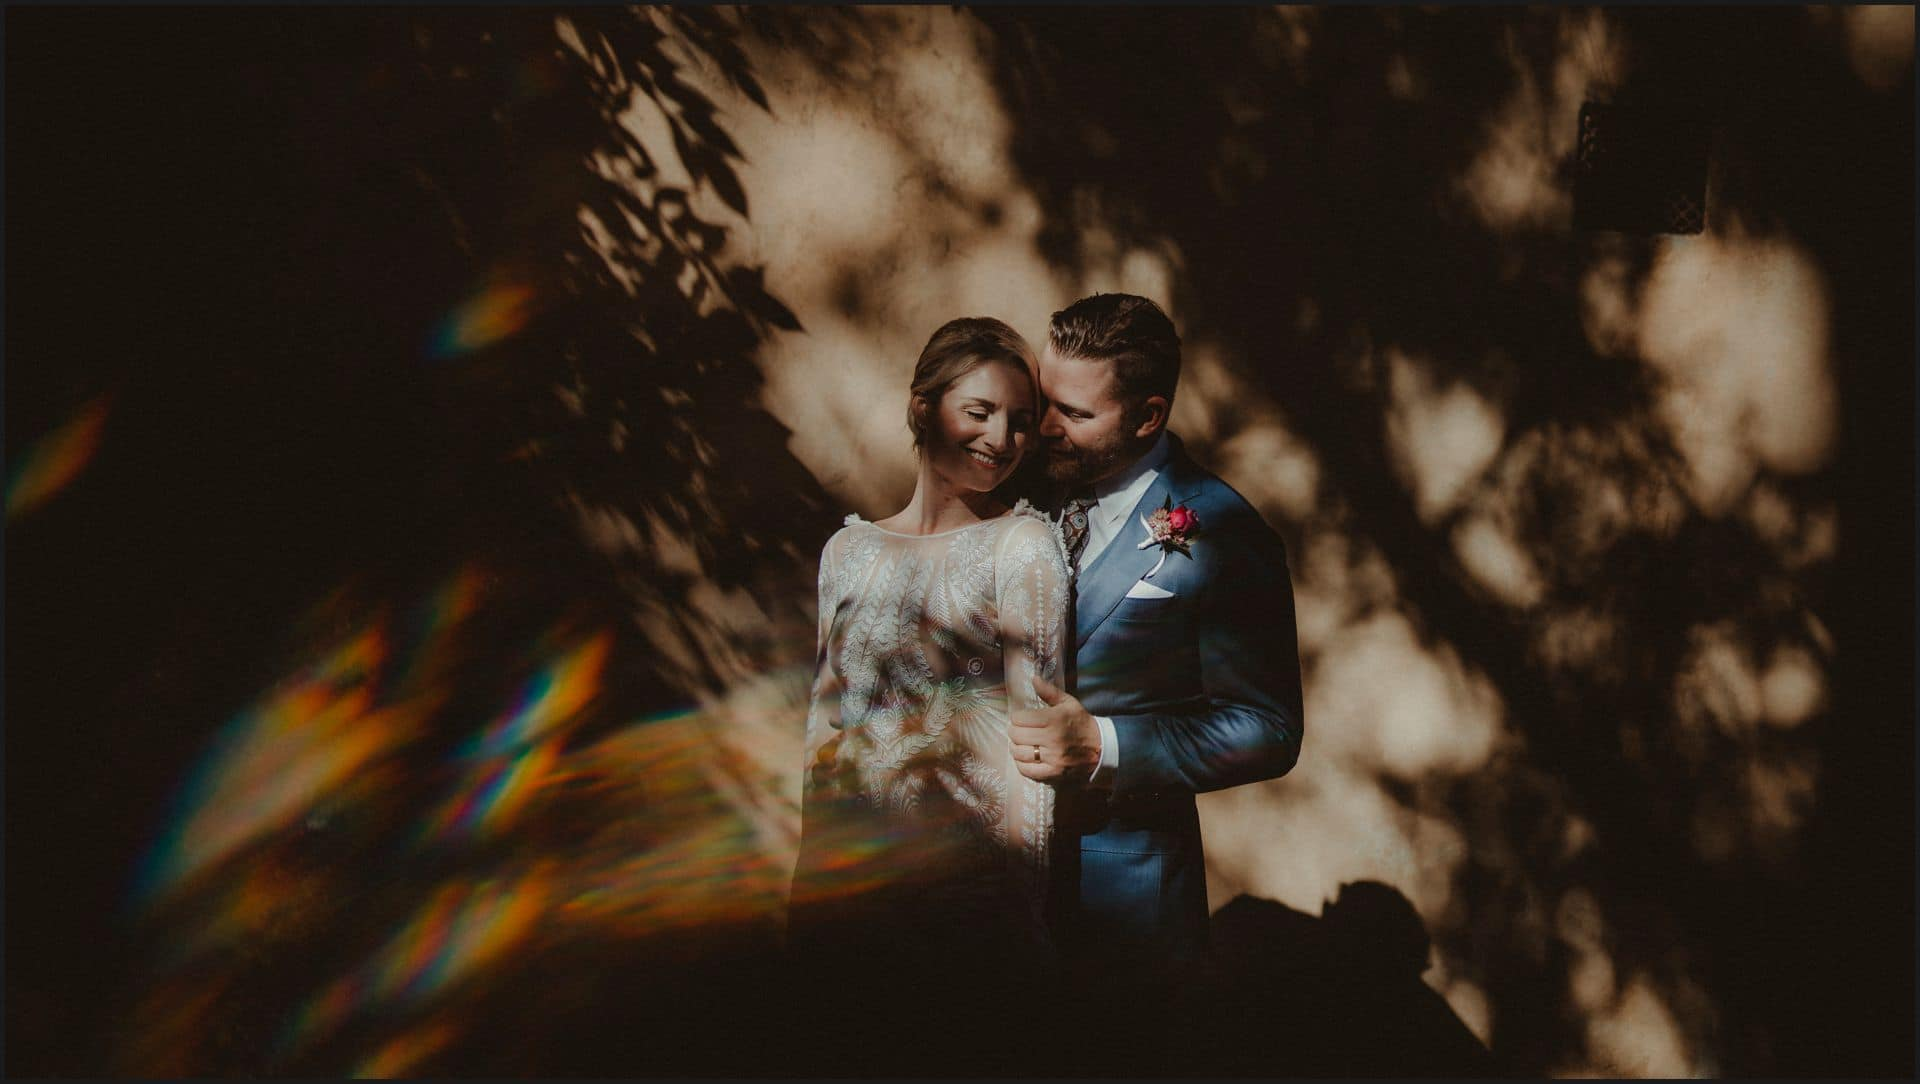 tuscany, wedding, villa medicea di lilliano, bride, groom